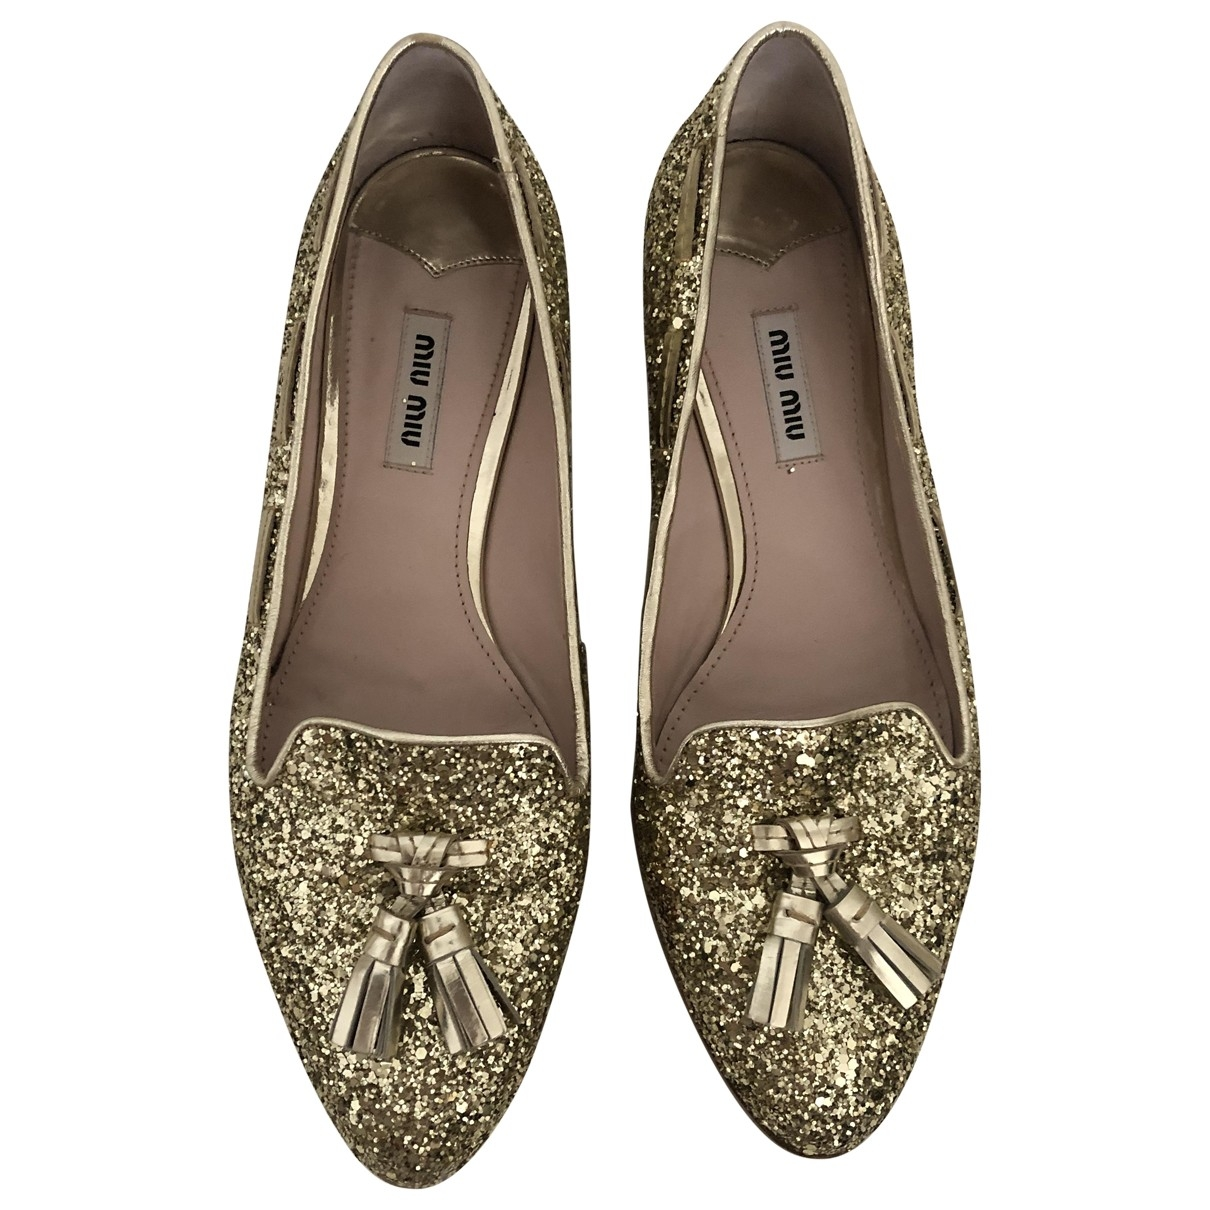 Miu Miu \N Gold Glitter Flats for Women 39 EU